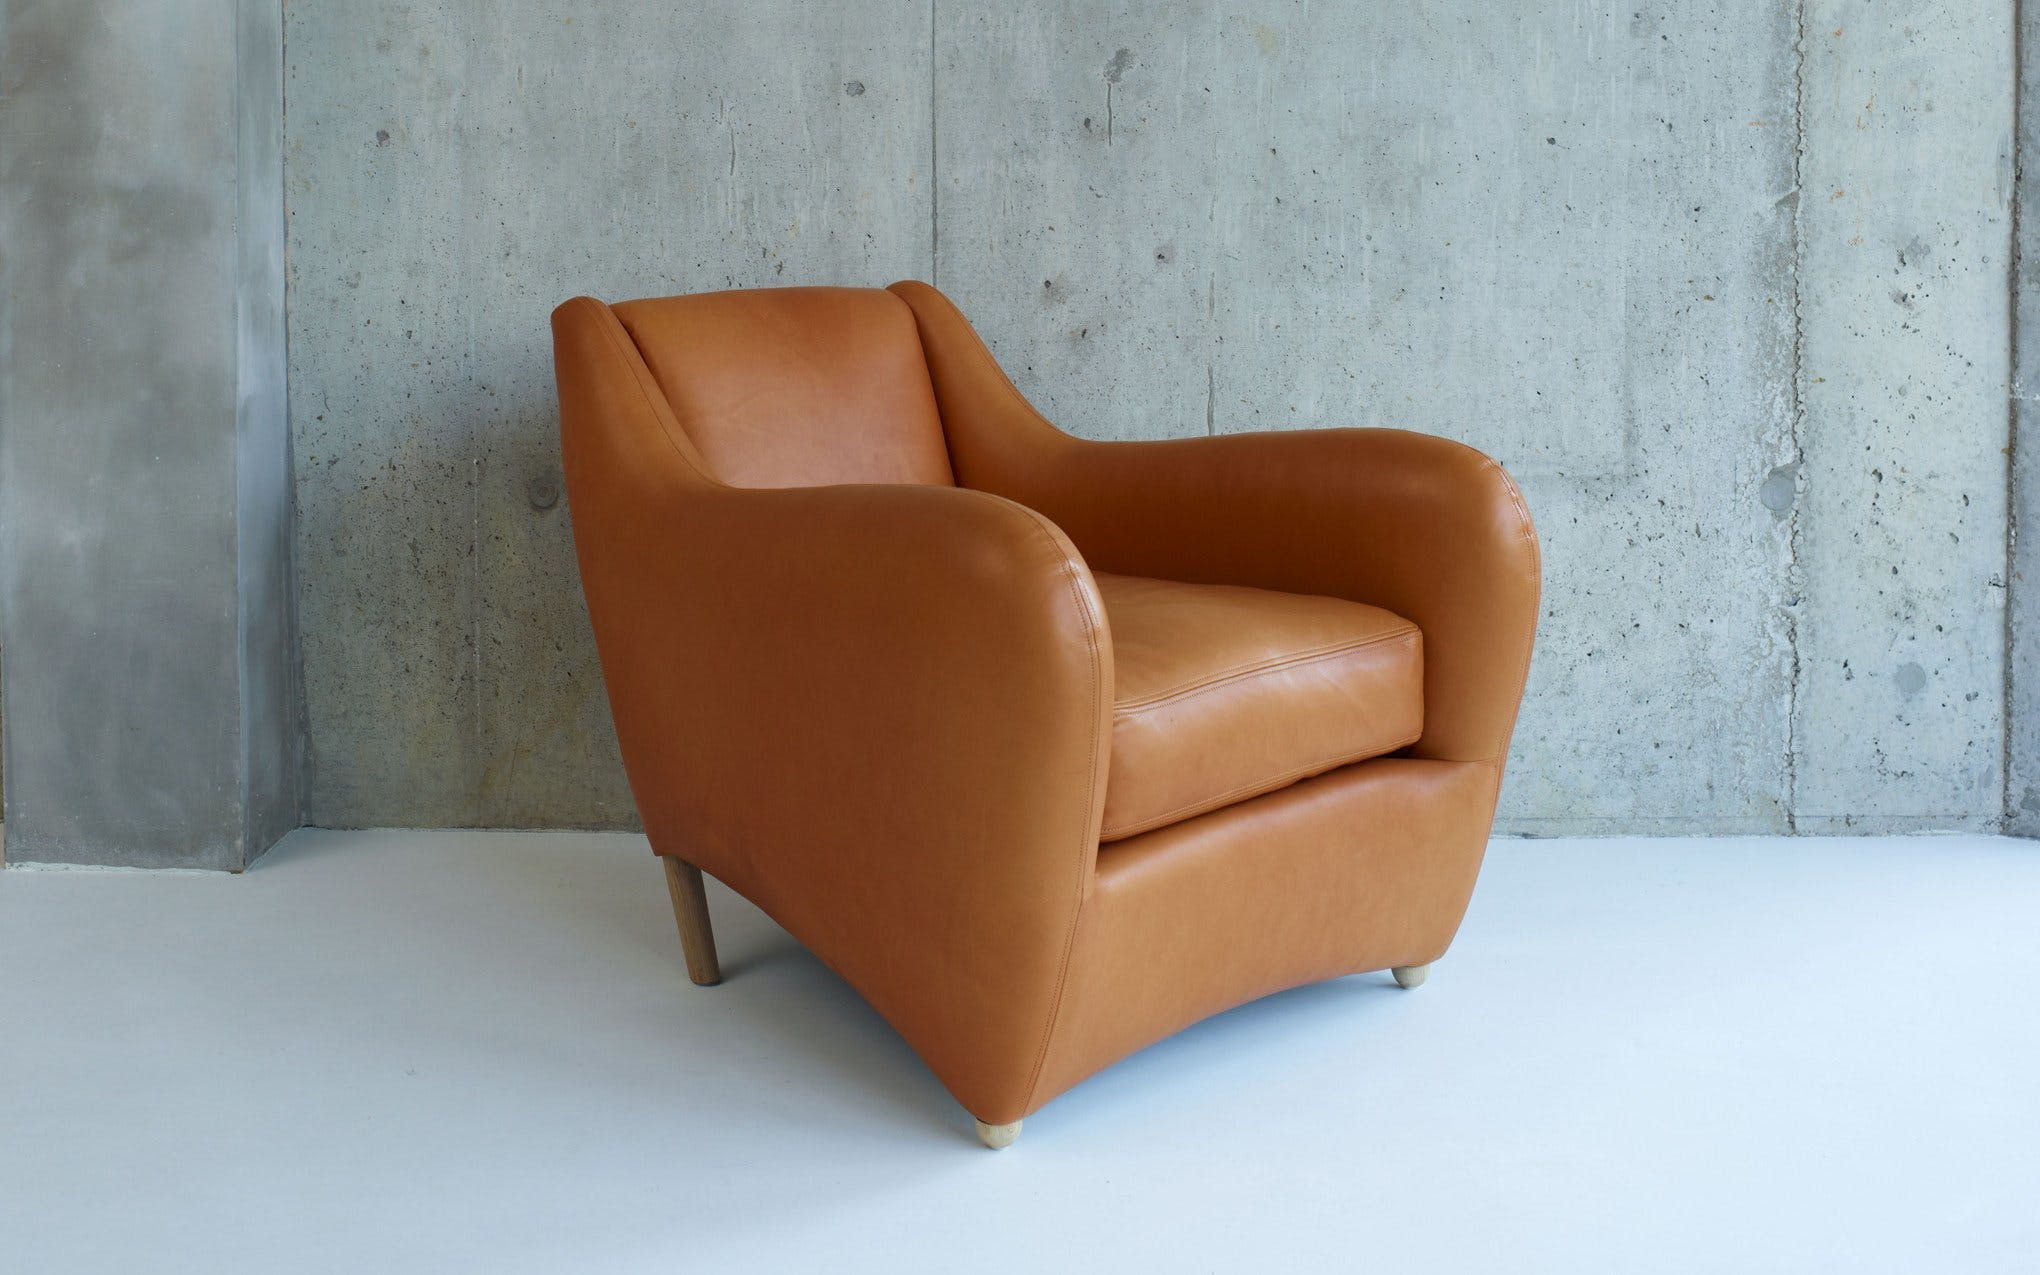 Balzac Armchair By Matthew Hilton For Scp 2 2048X2048